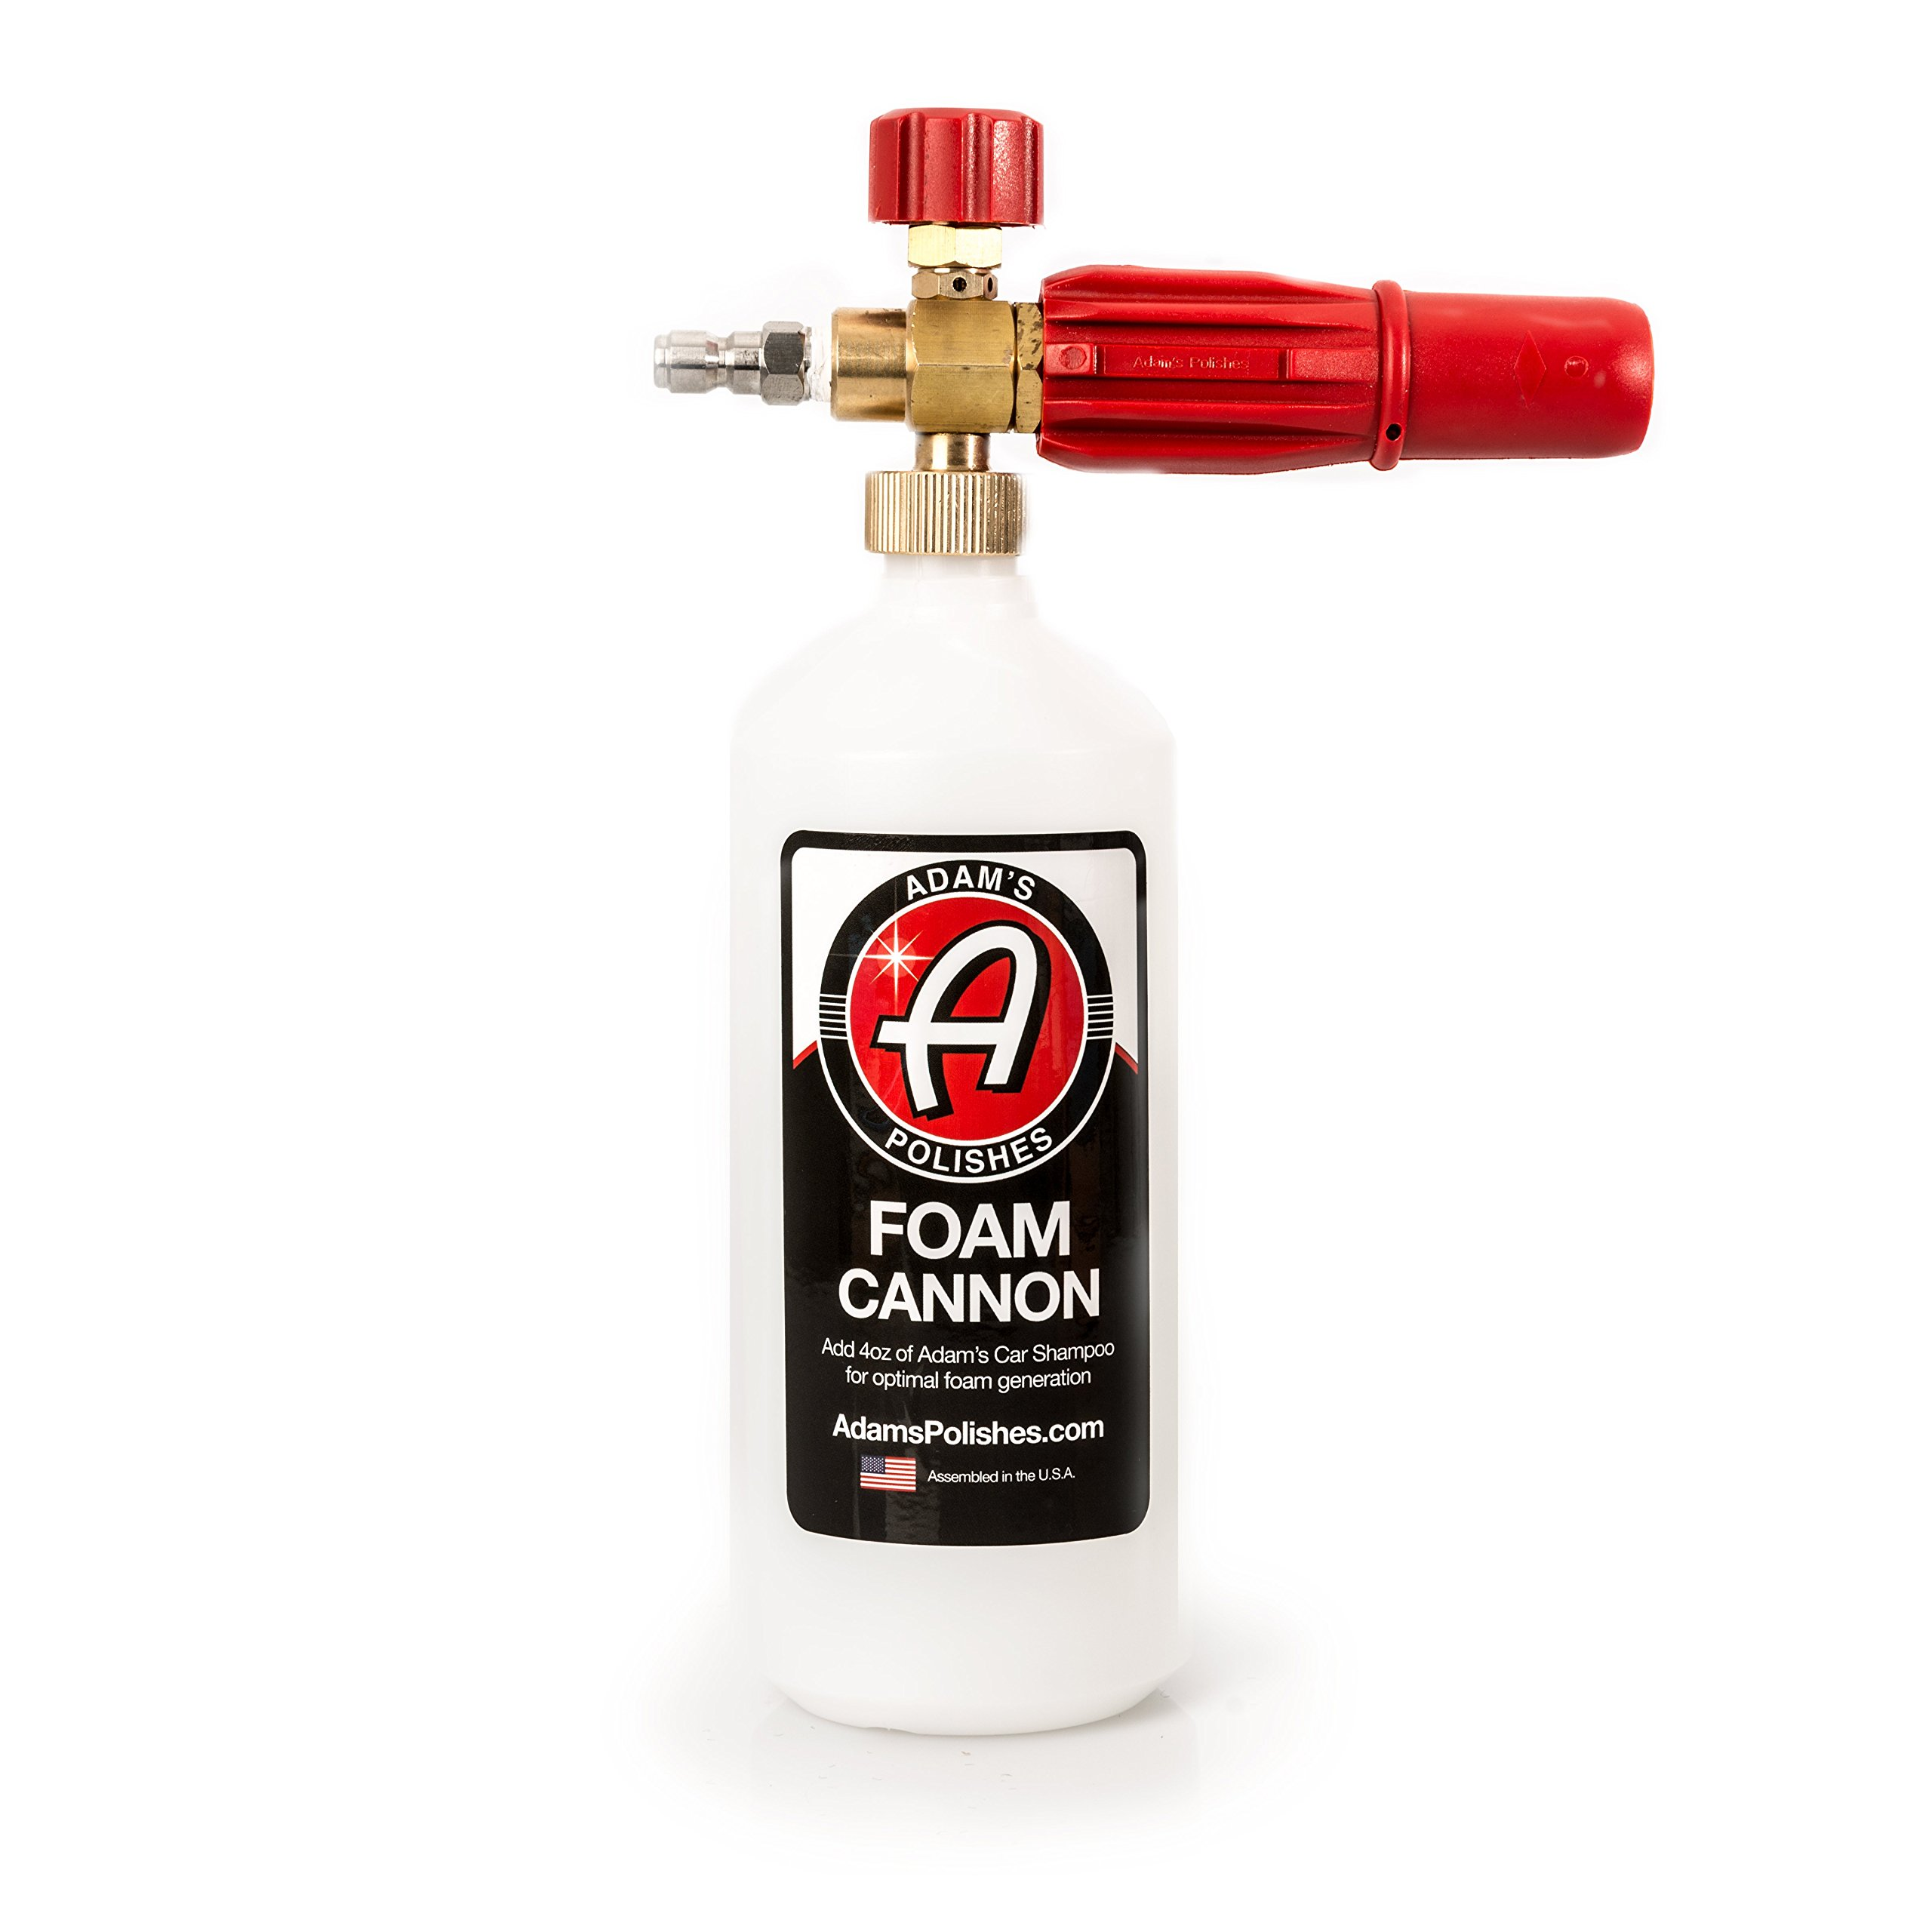 Adam's Red Foam Cannon - Produces Unbelievably Thick Snow Foam - Adjustable Air Intake Valve, Fan Pattern For Optimal Car Washing And Quick Connector For Pressure Washer Gun Blaster (Foam Cannon Only)